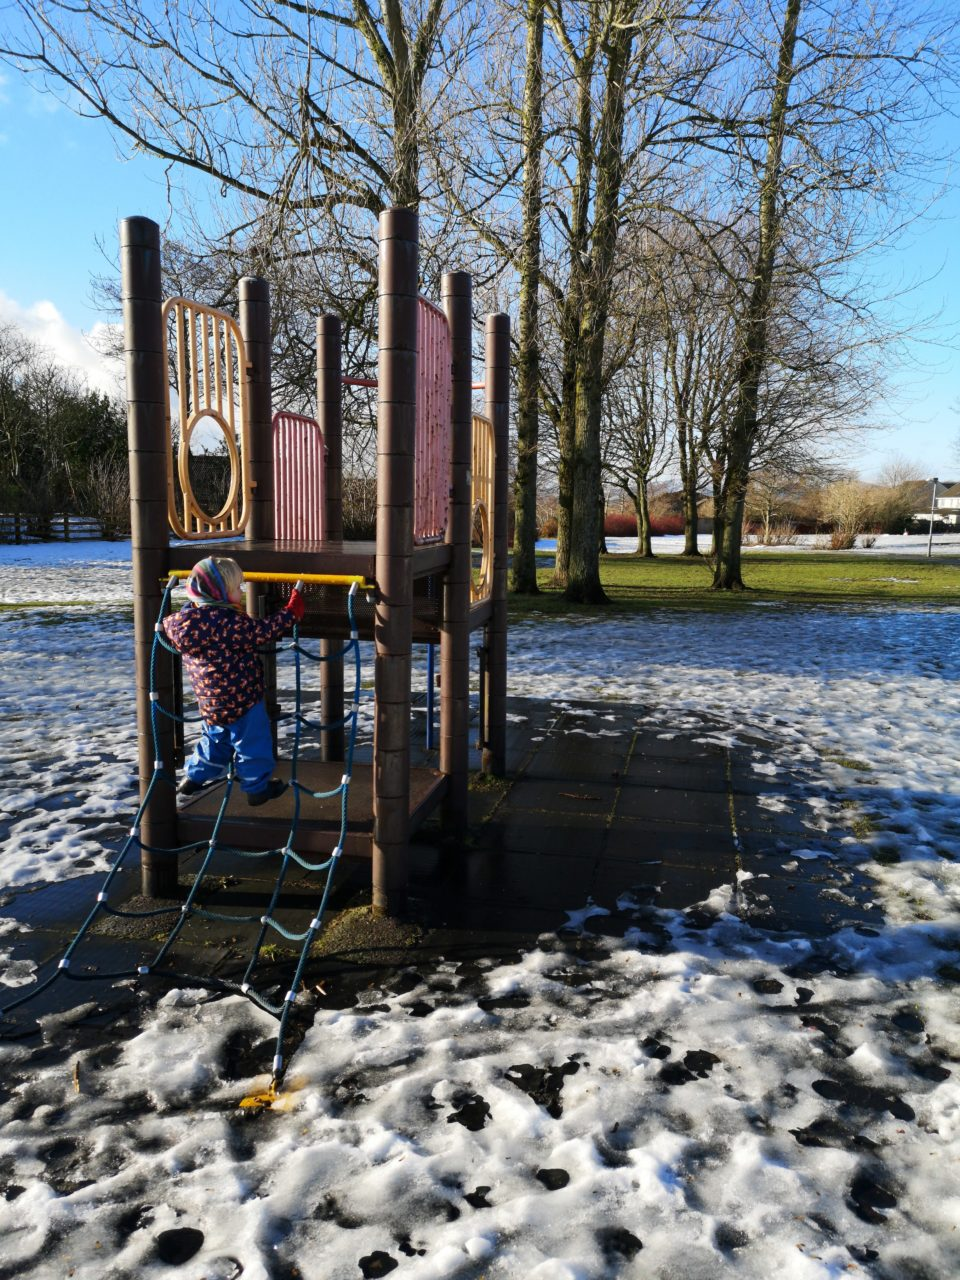 Toddler on a climbing frame at the park